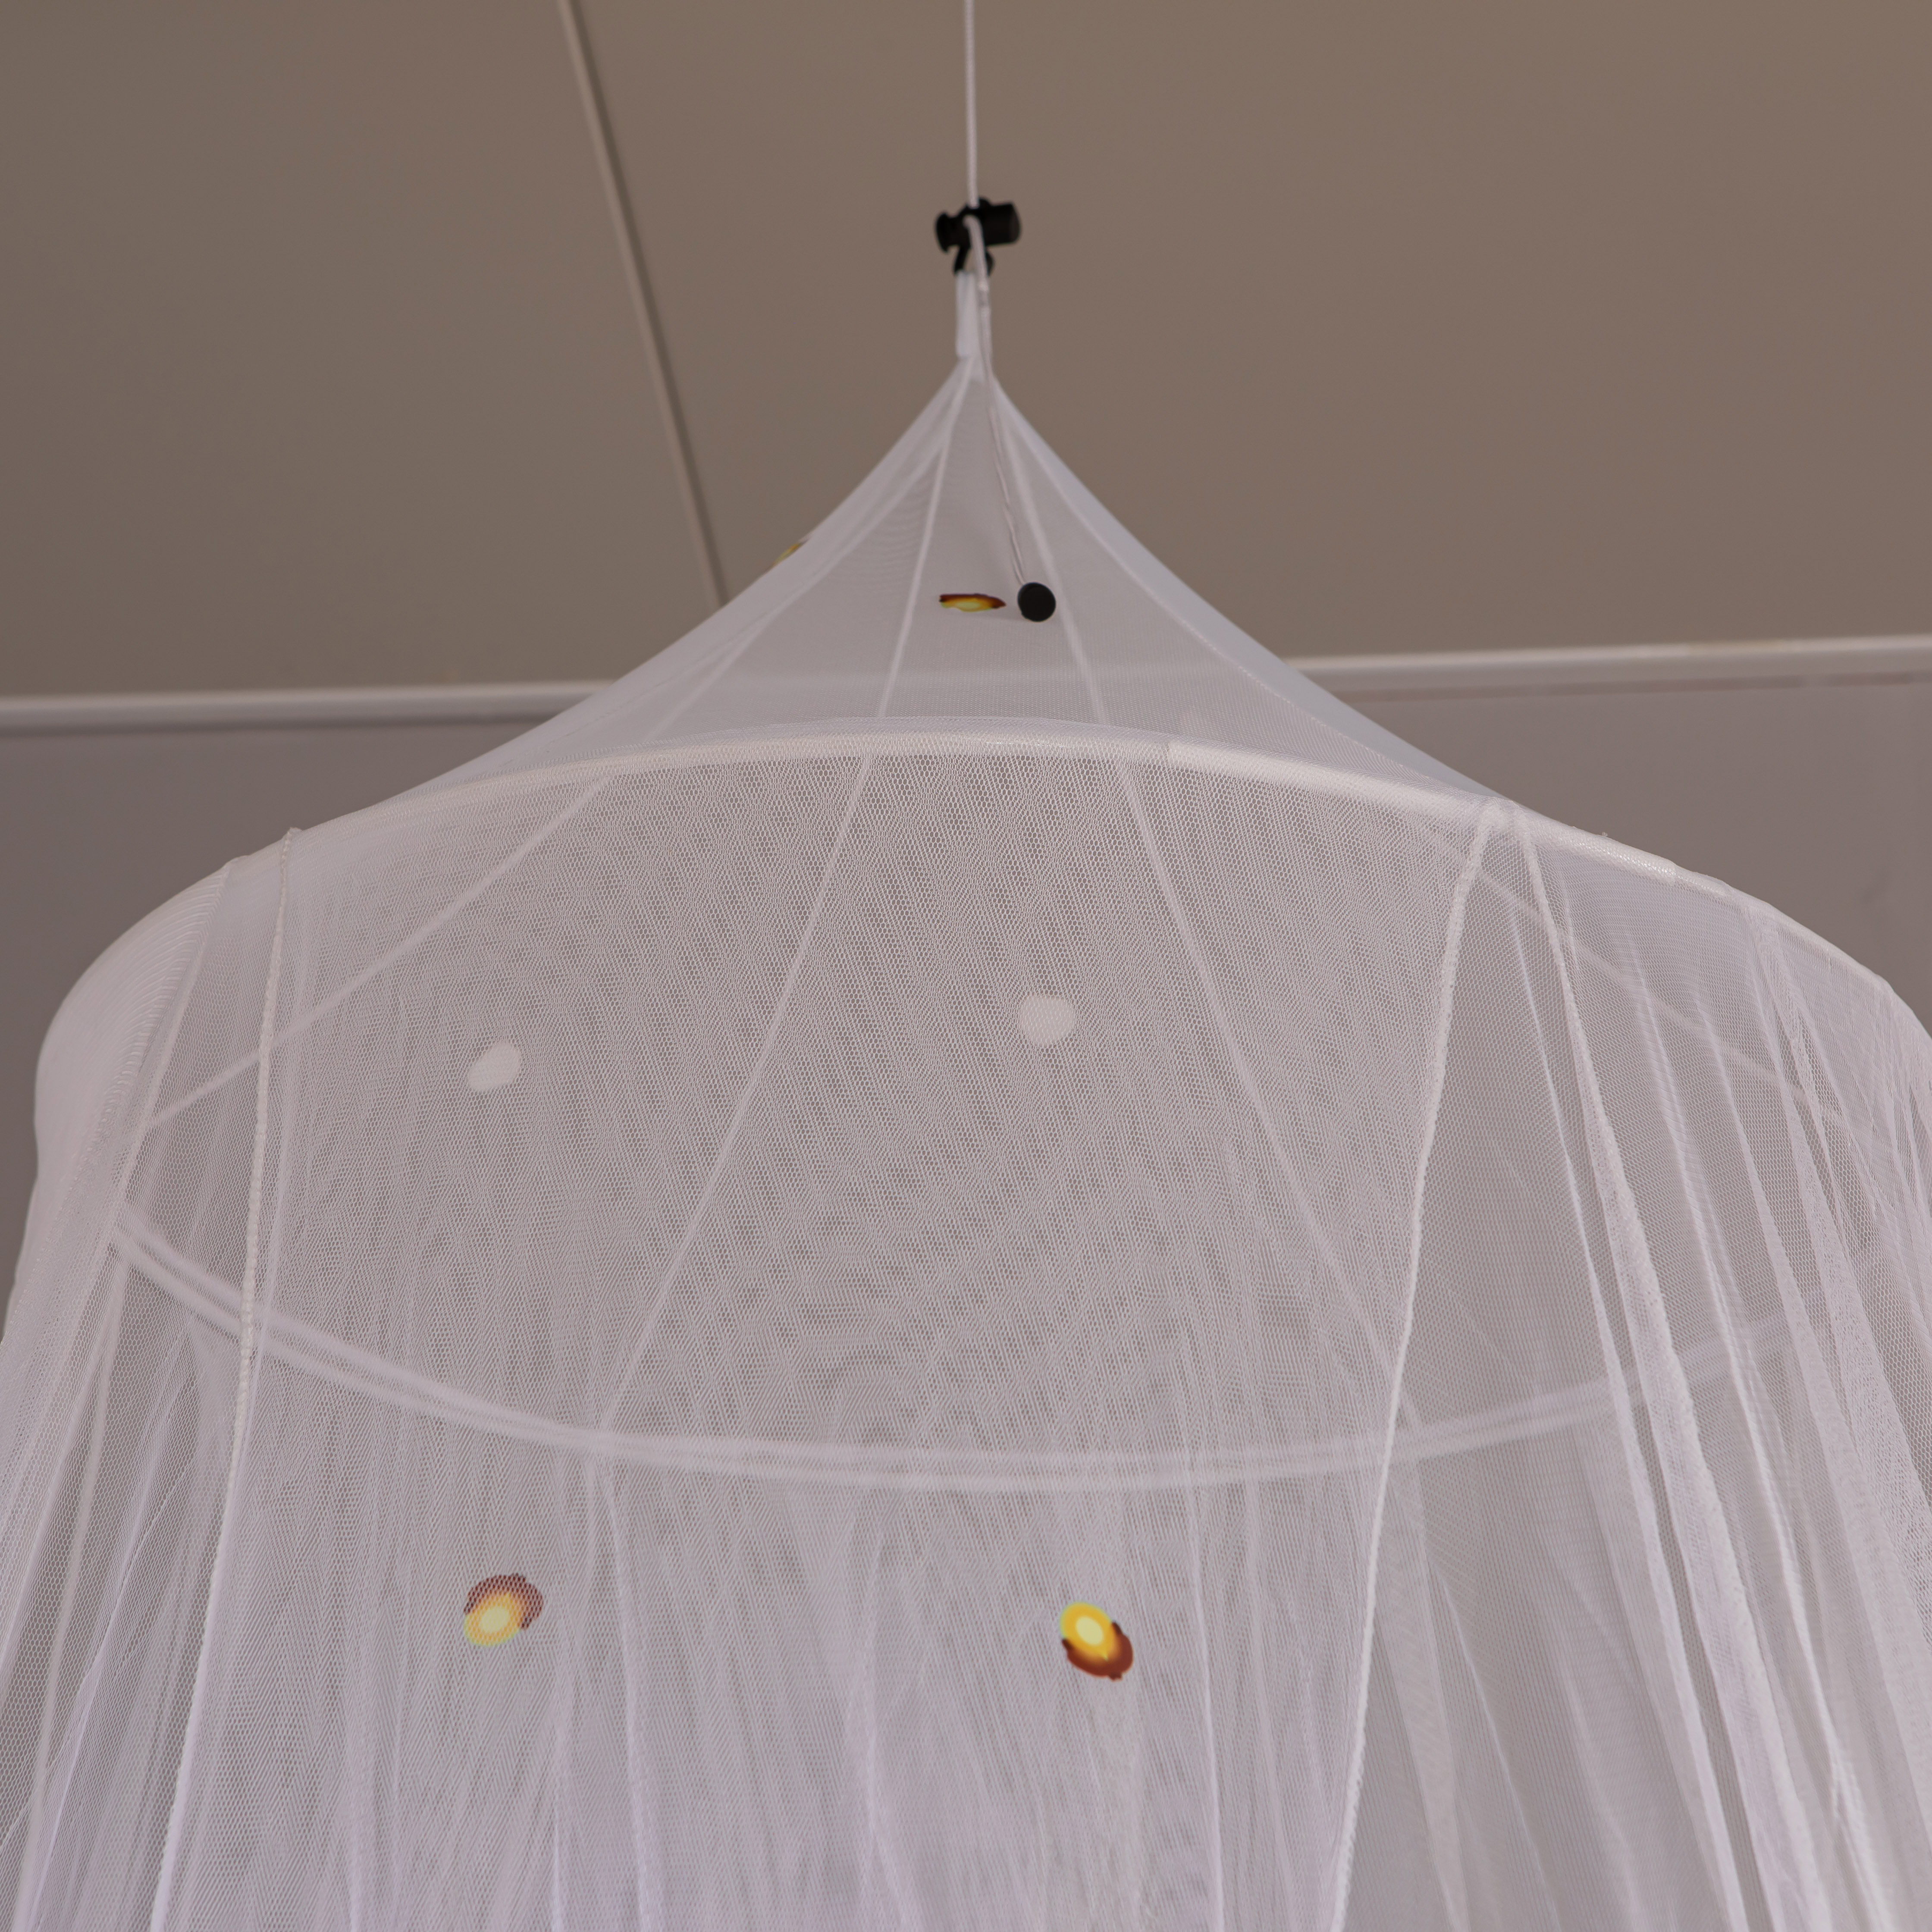 Easy Set Up Growing In The Dark Firefly Concial White Mosquito Net Bed Canopy